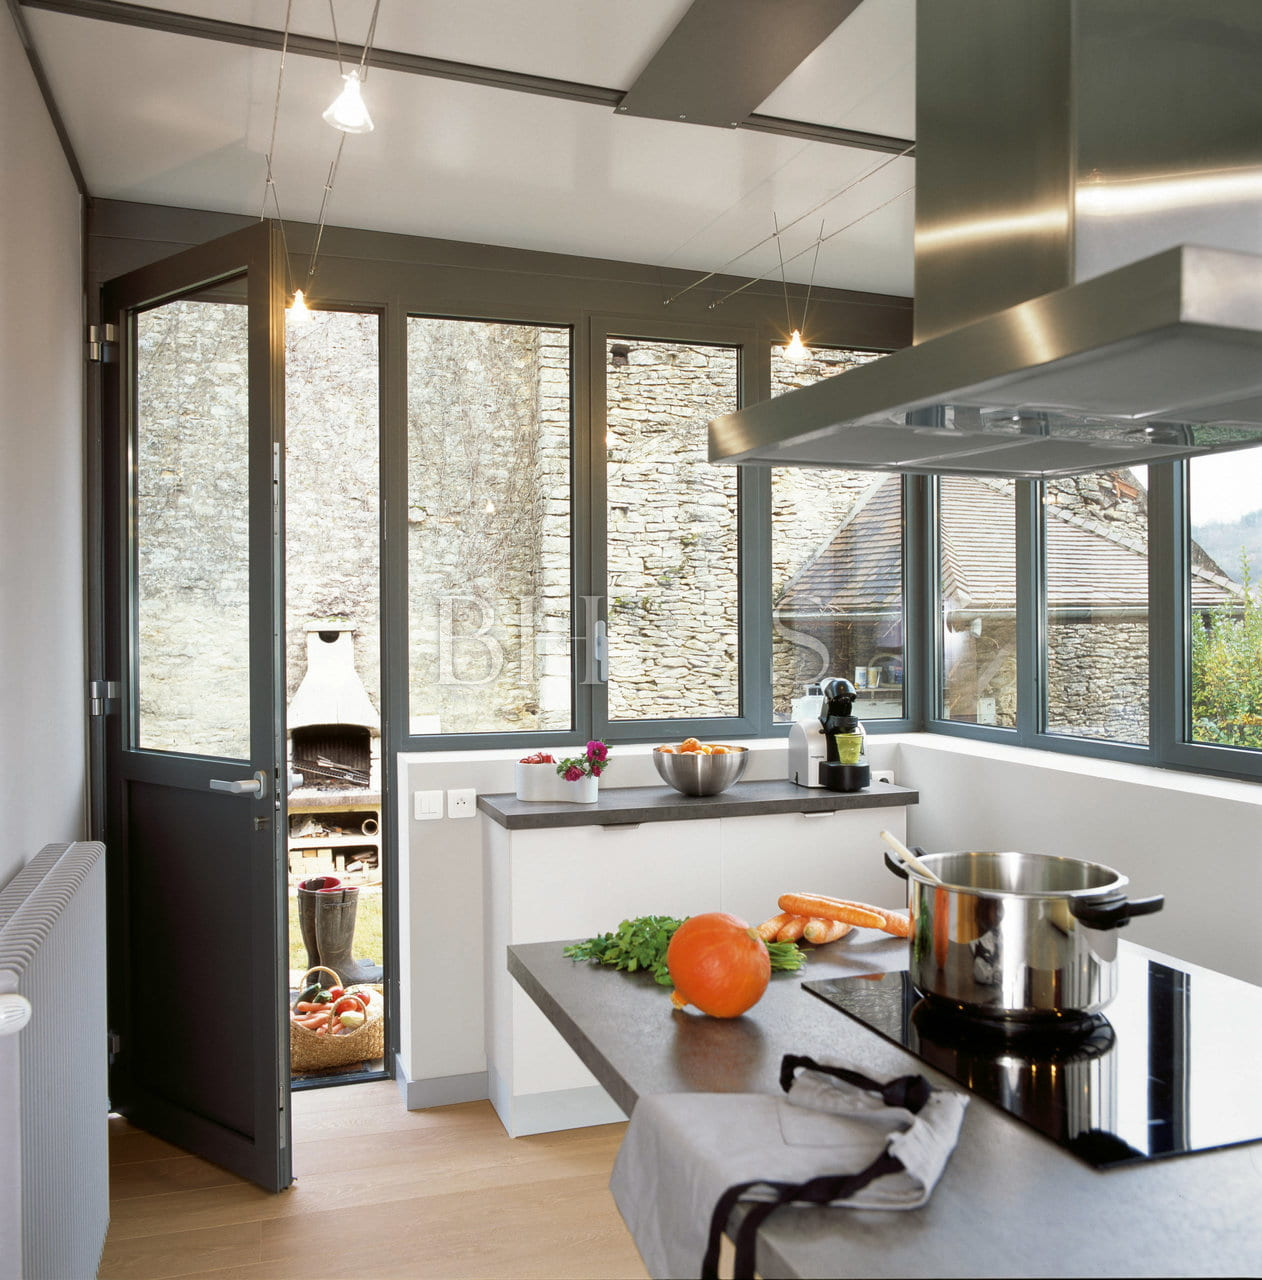 Charmant Renovation De Maison #1: ... COMPLETE RENOVATION PROJECT IN A BURGUNDIAN WINE VILLAGE ...